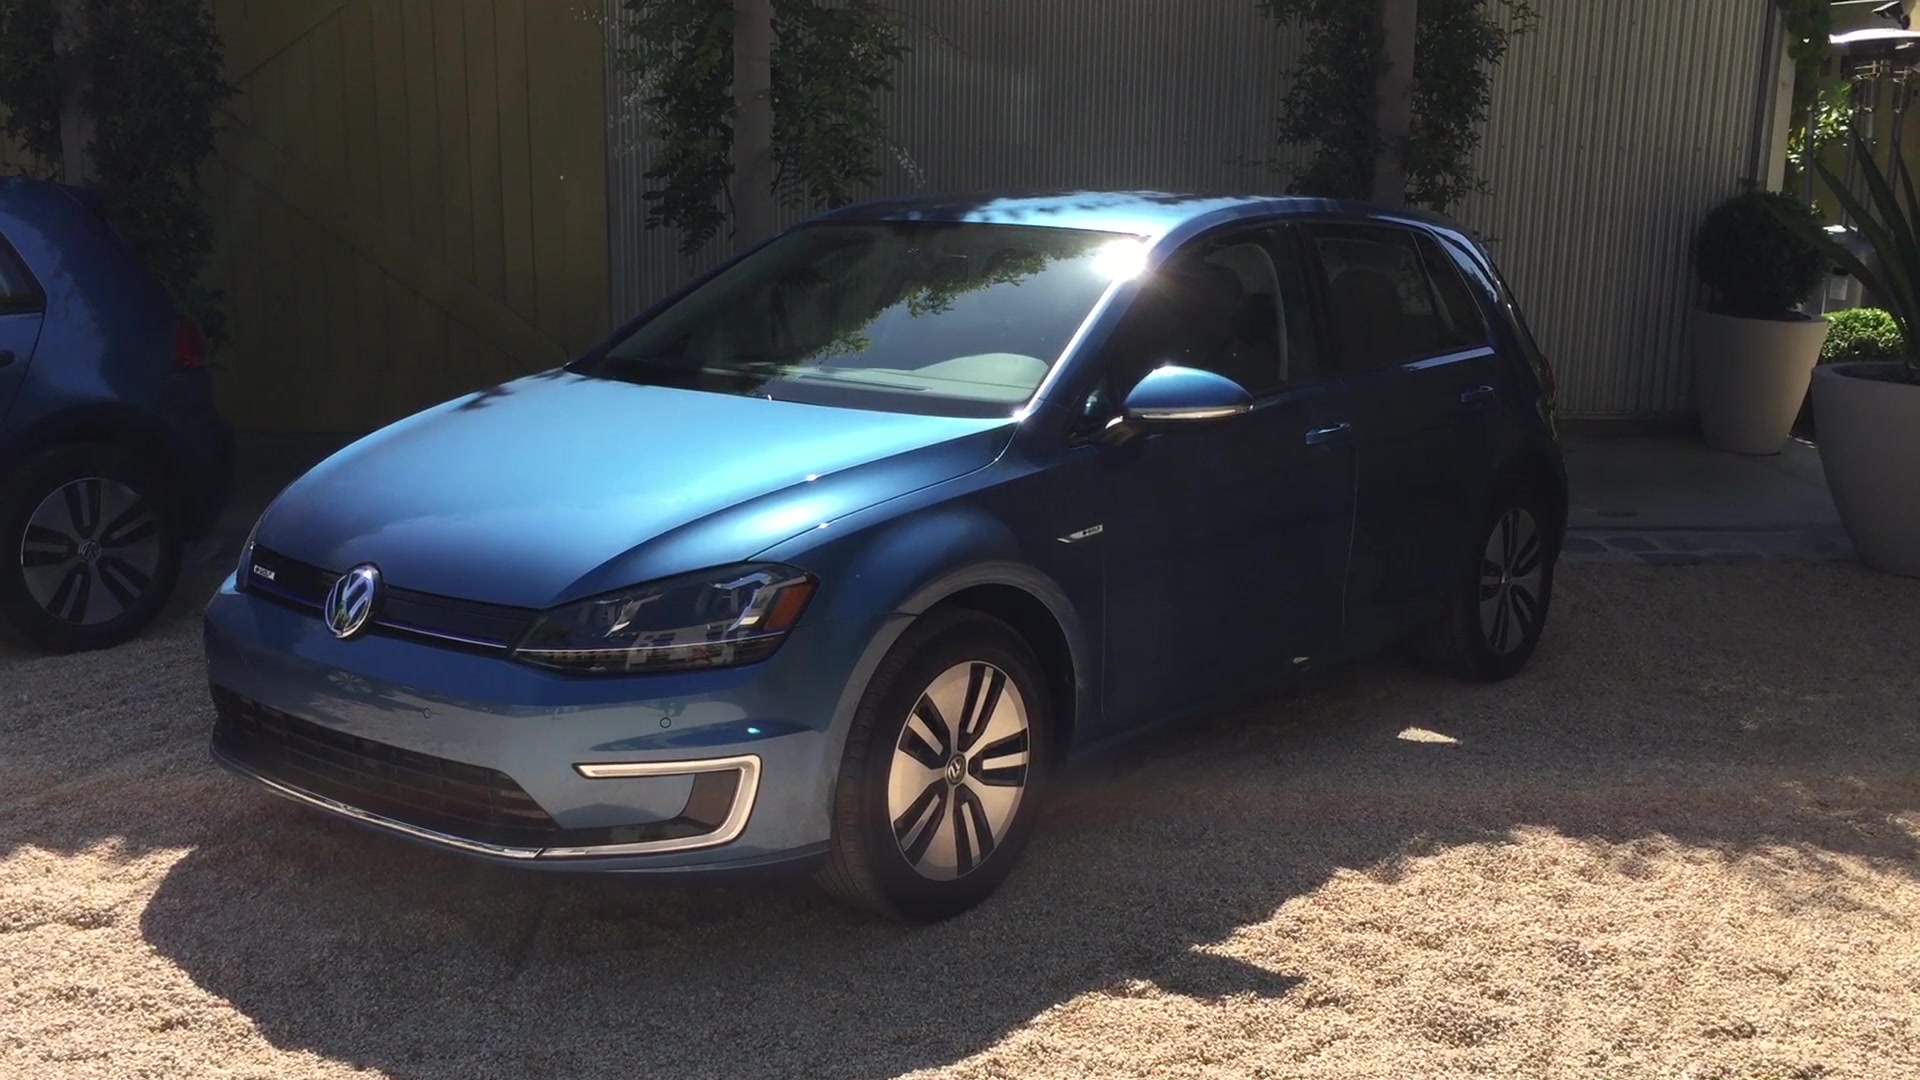 Carbon Neutral Volkswagen E-Golf Via Emission Offset Credits